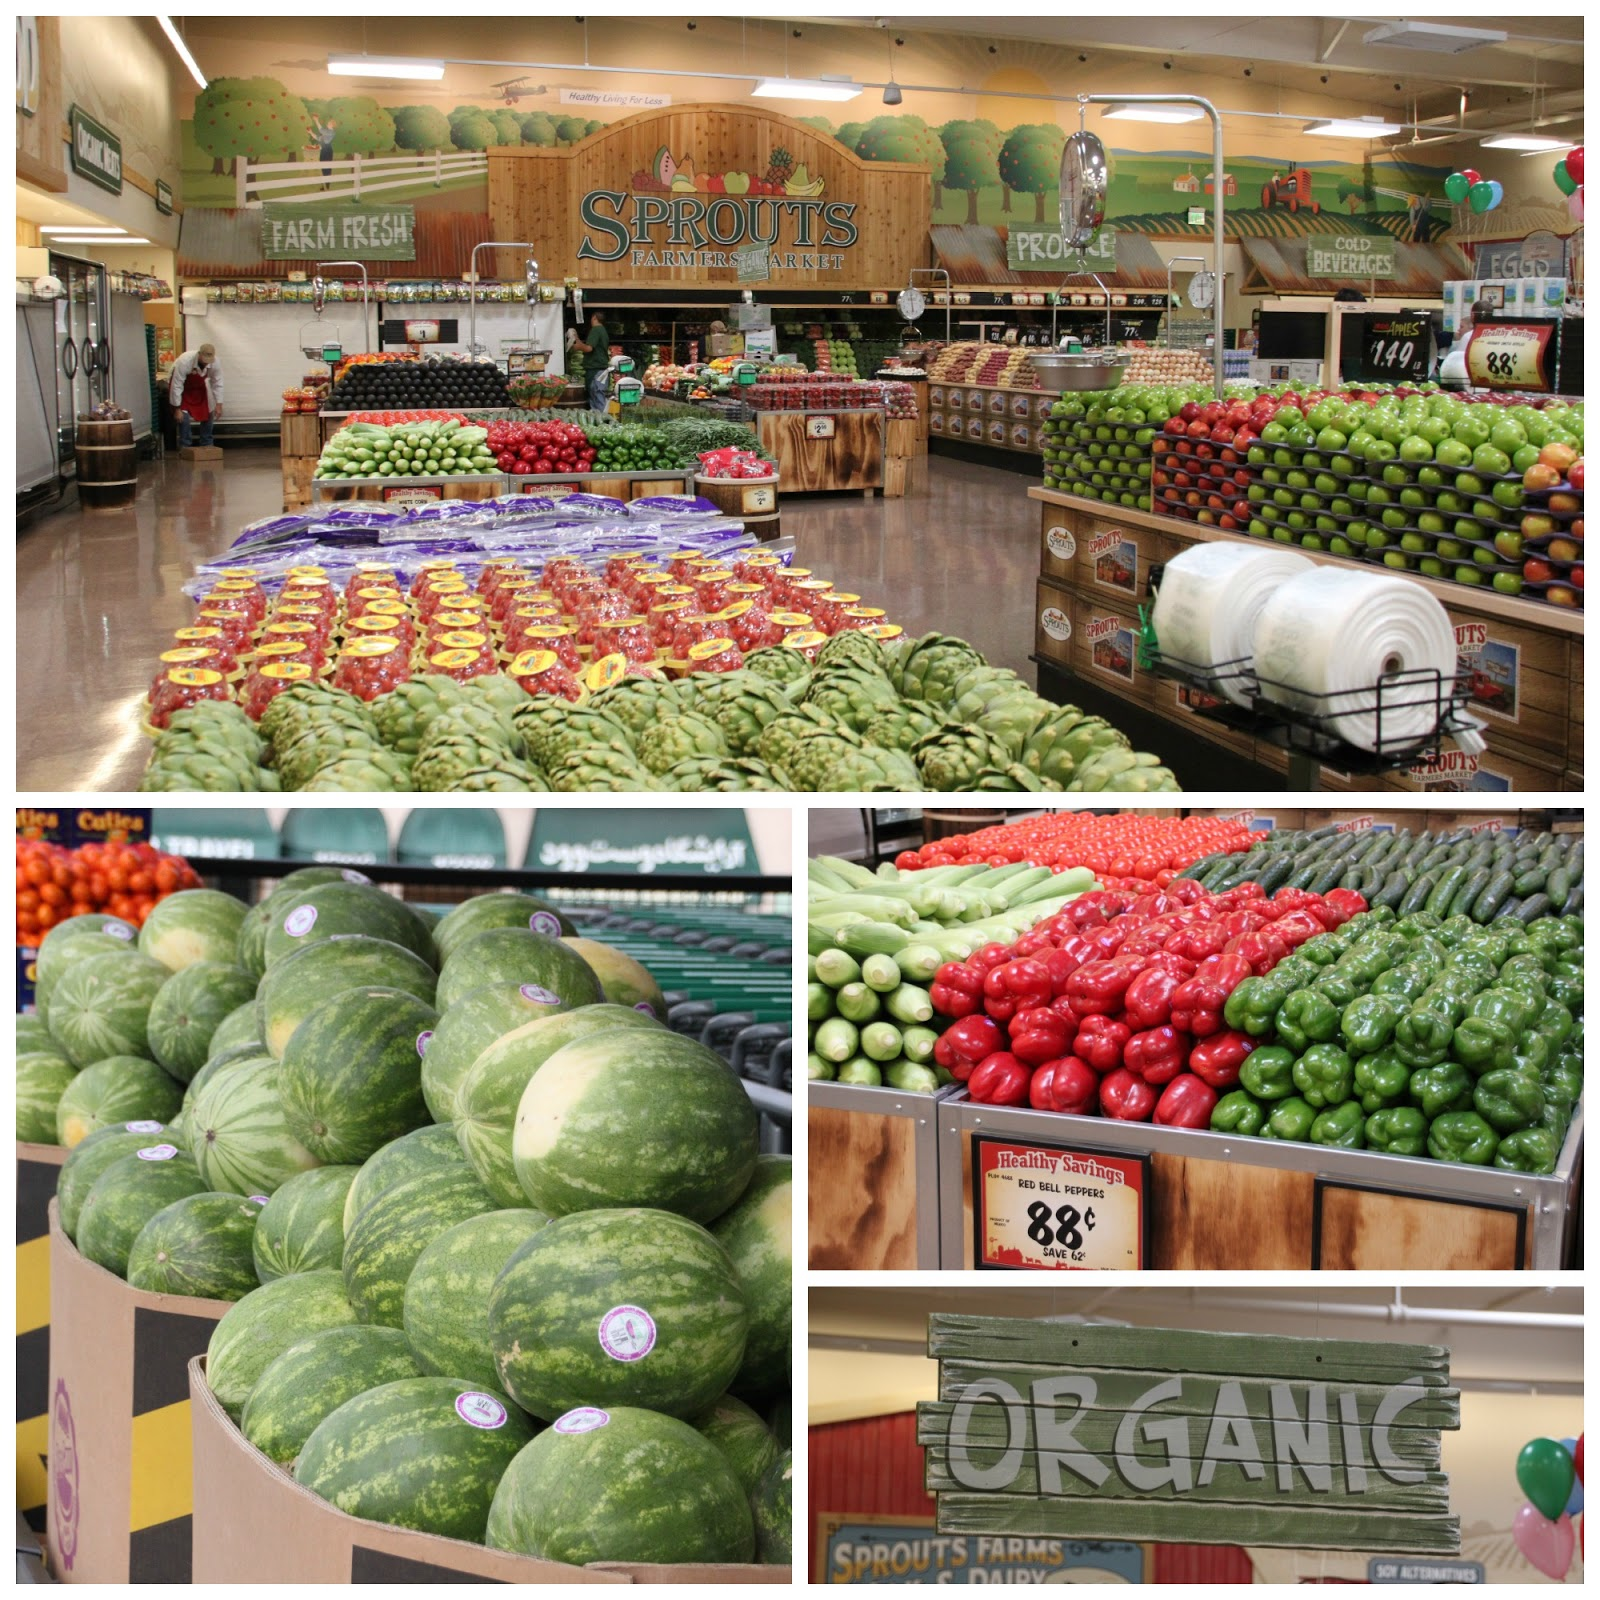 A Better Life with Burgers: Sprouts Farmers Market